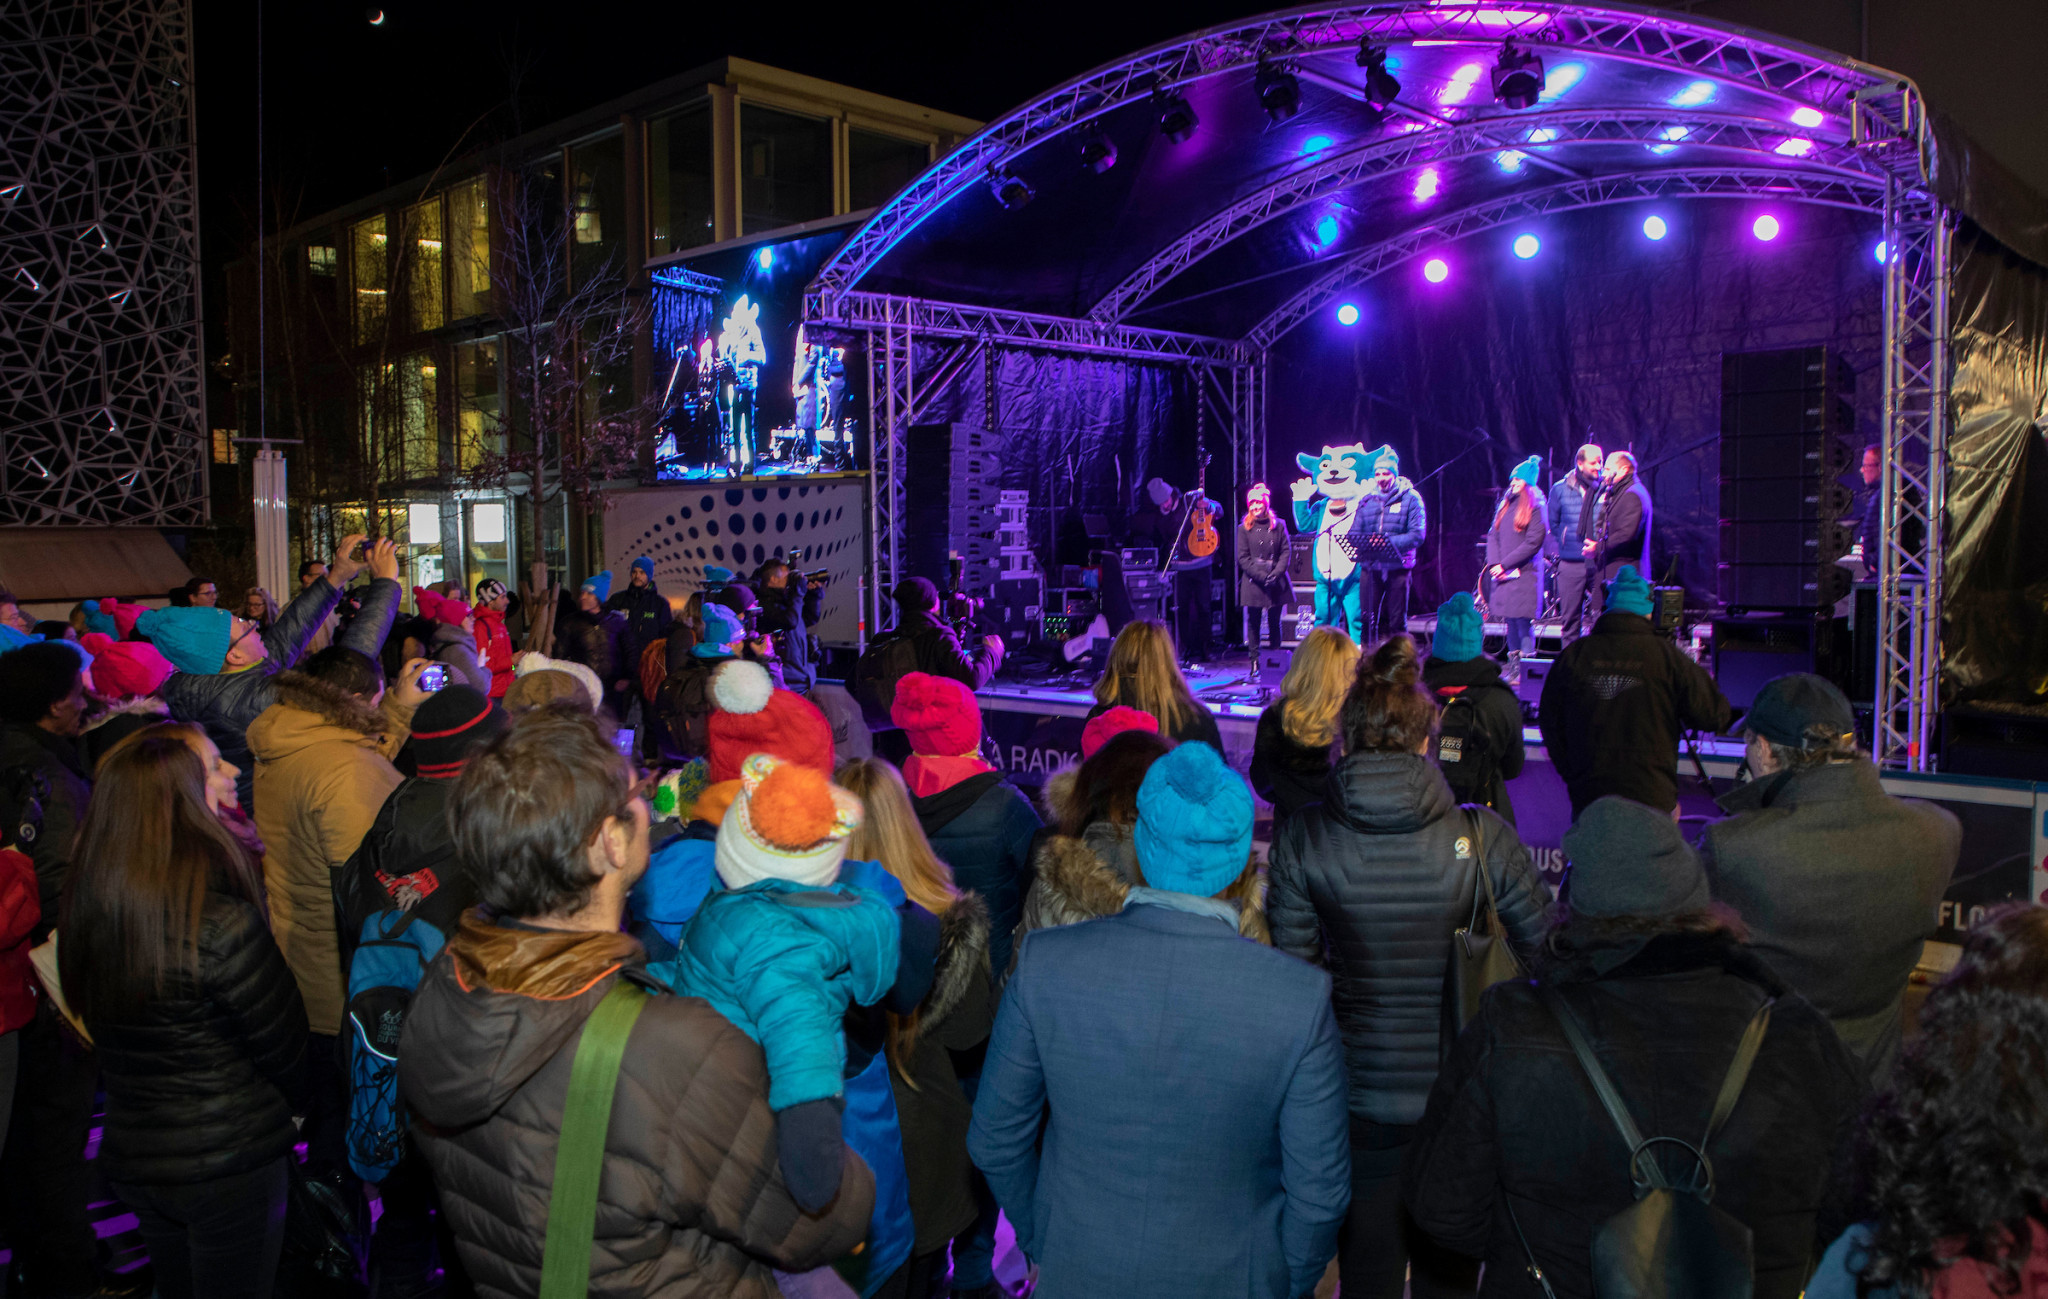 Lausanne 2020 held a celebratory concert to mark the one year to go milestone on the proposed Winter Youth Olympic medal plaza ©IOC